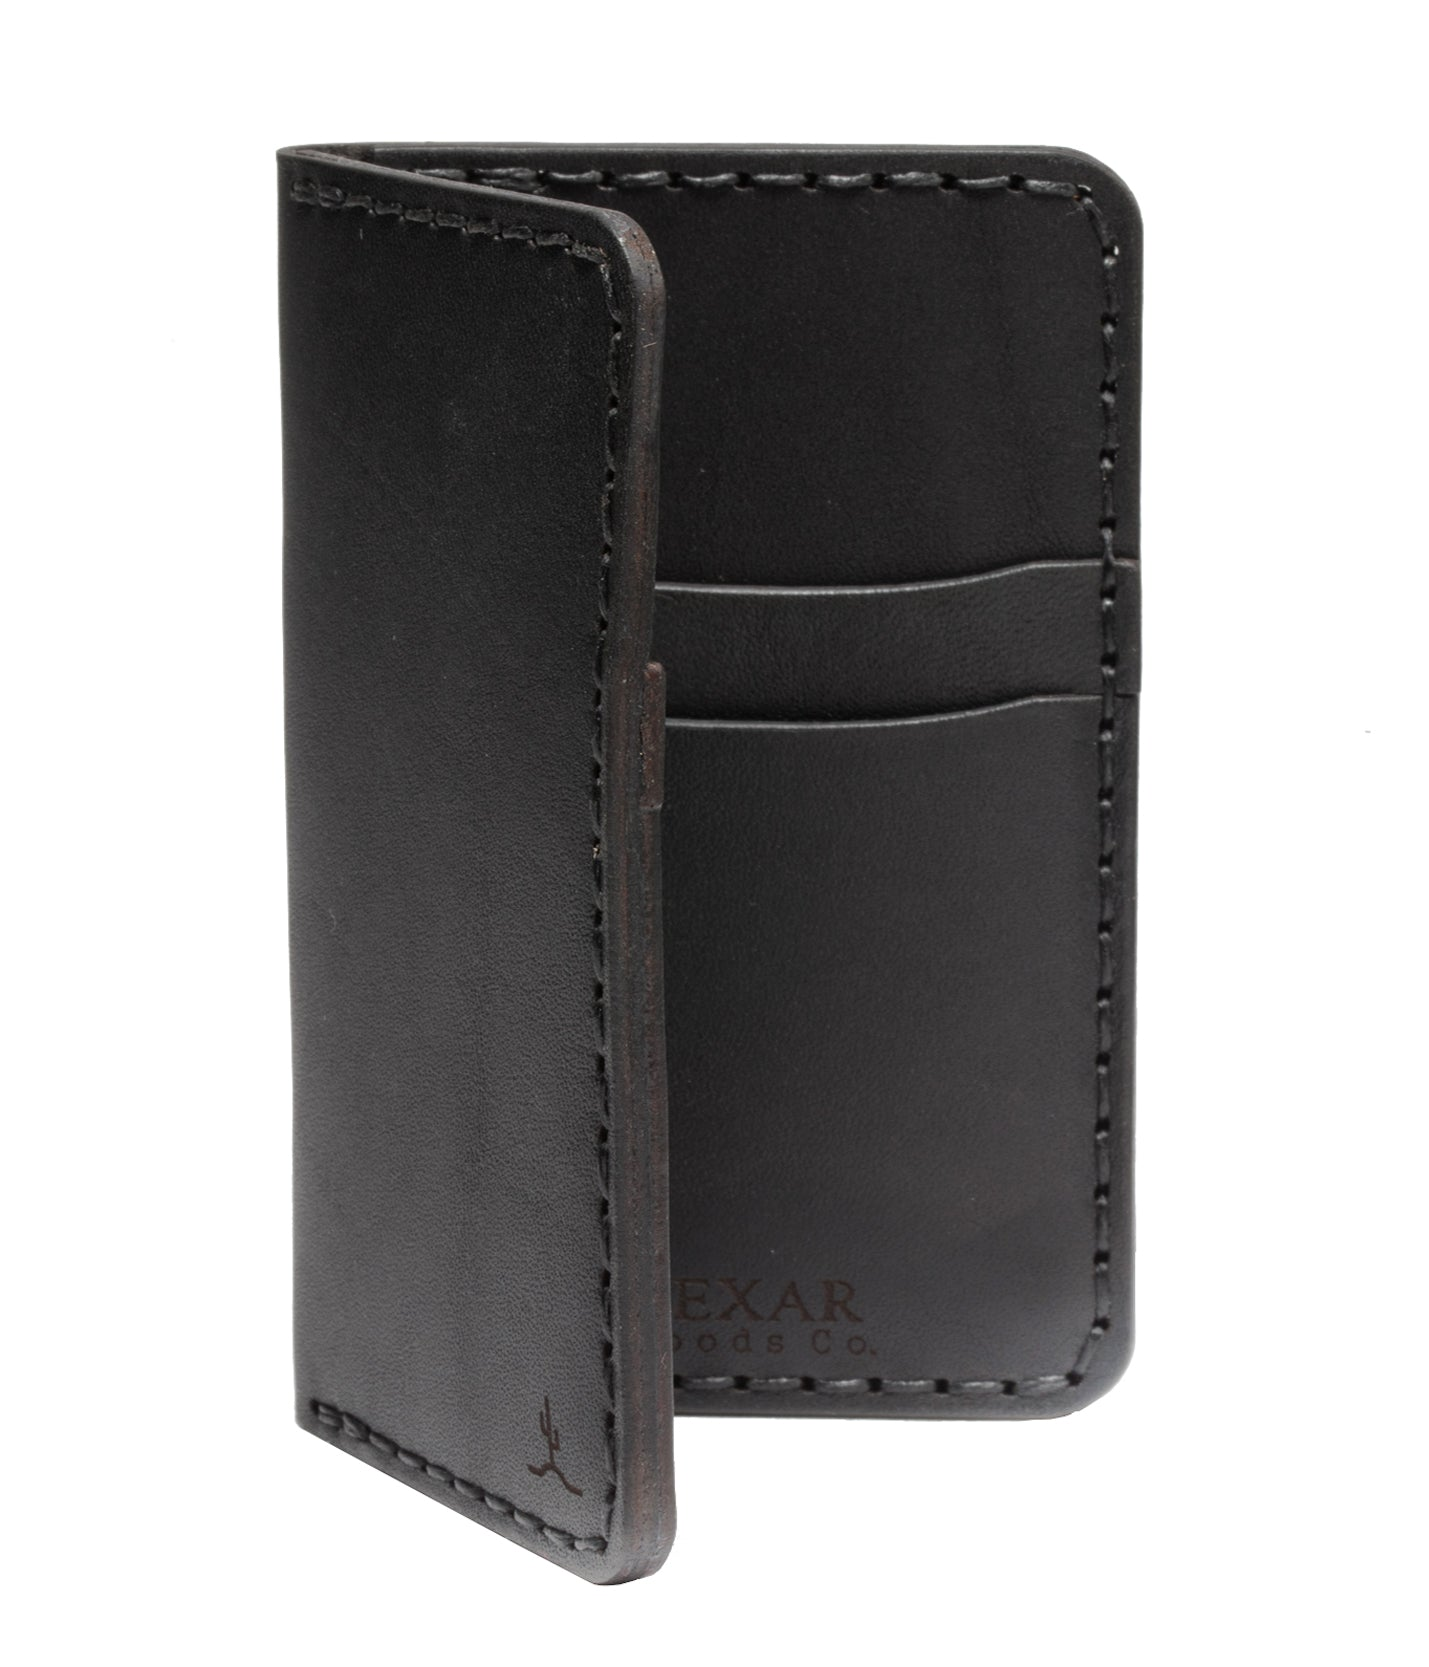 Vertical Card Wallet // Black - Bexar Goods Co.